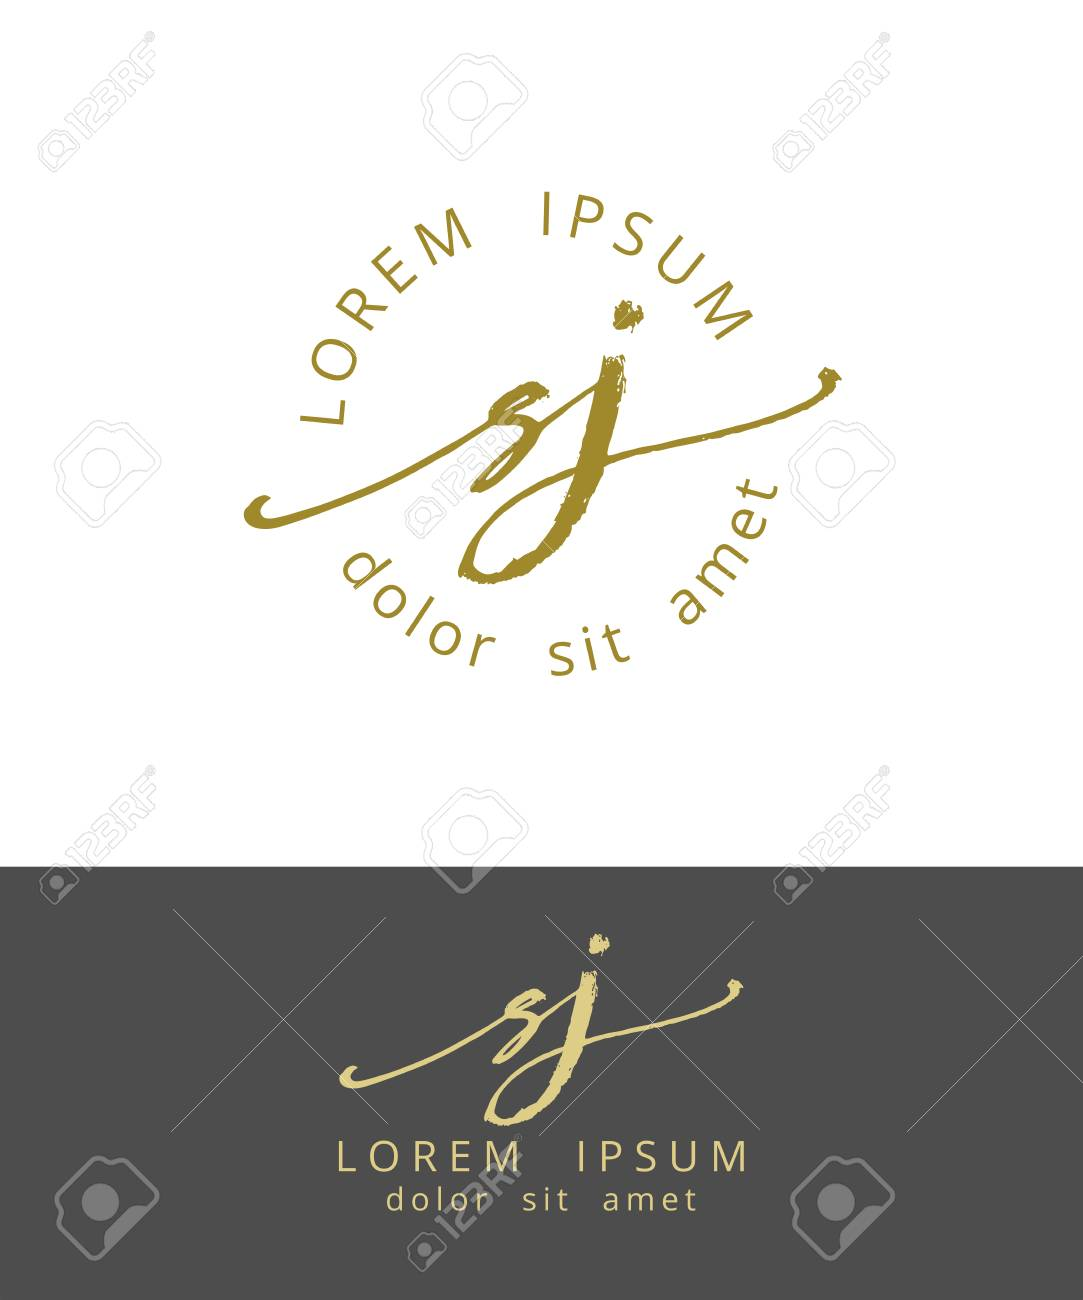 S J Hand Drawn Brush Monogram Calligraphy Logo Design Work Royalty Free Cliparts Vectors And Stock Illustration Image 95580216